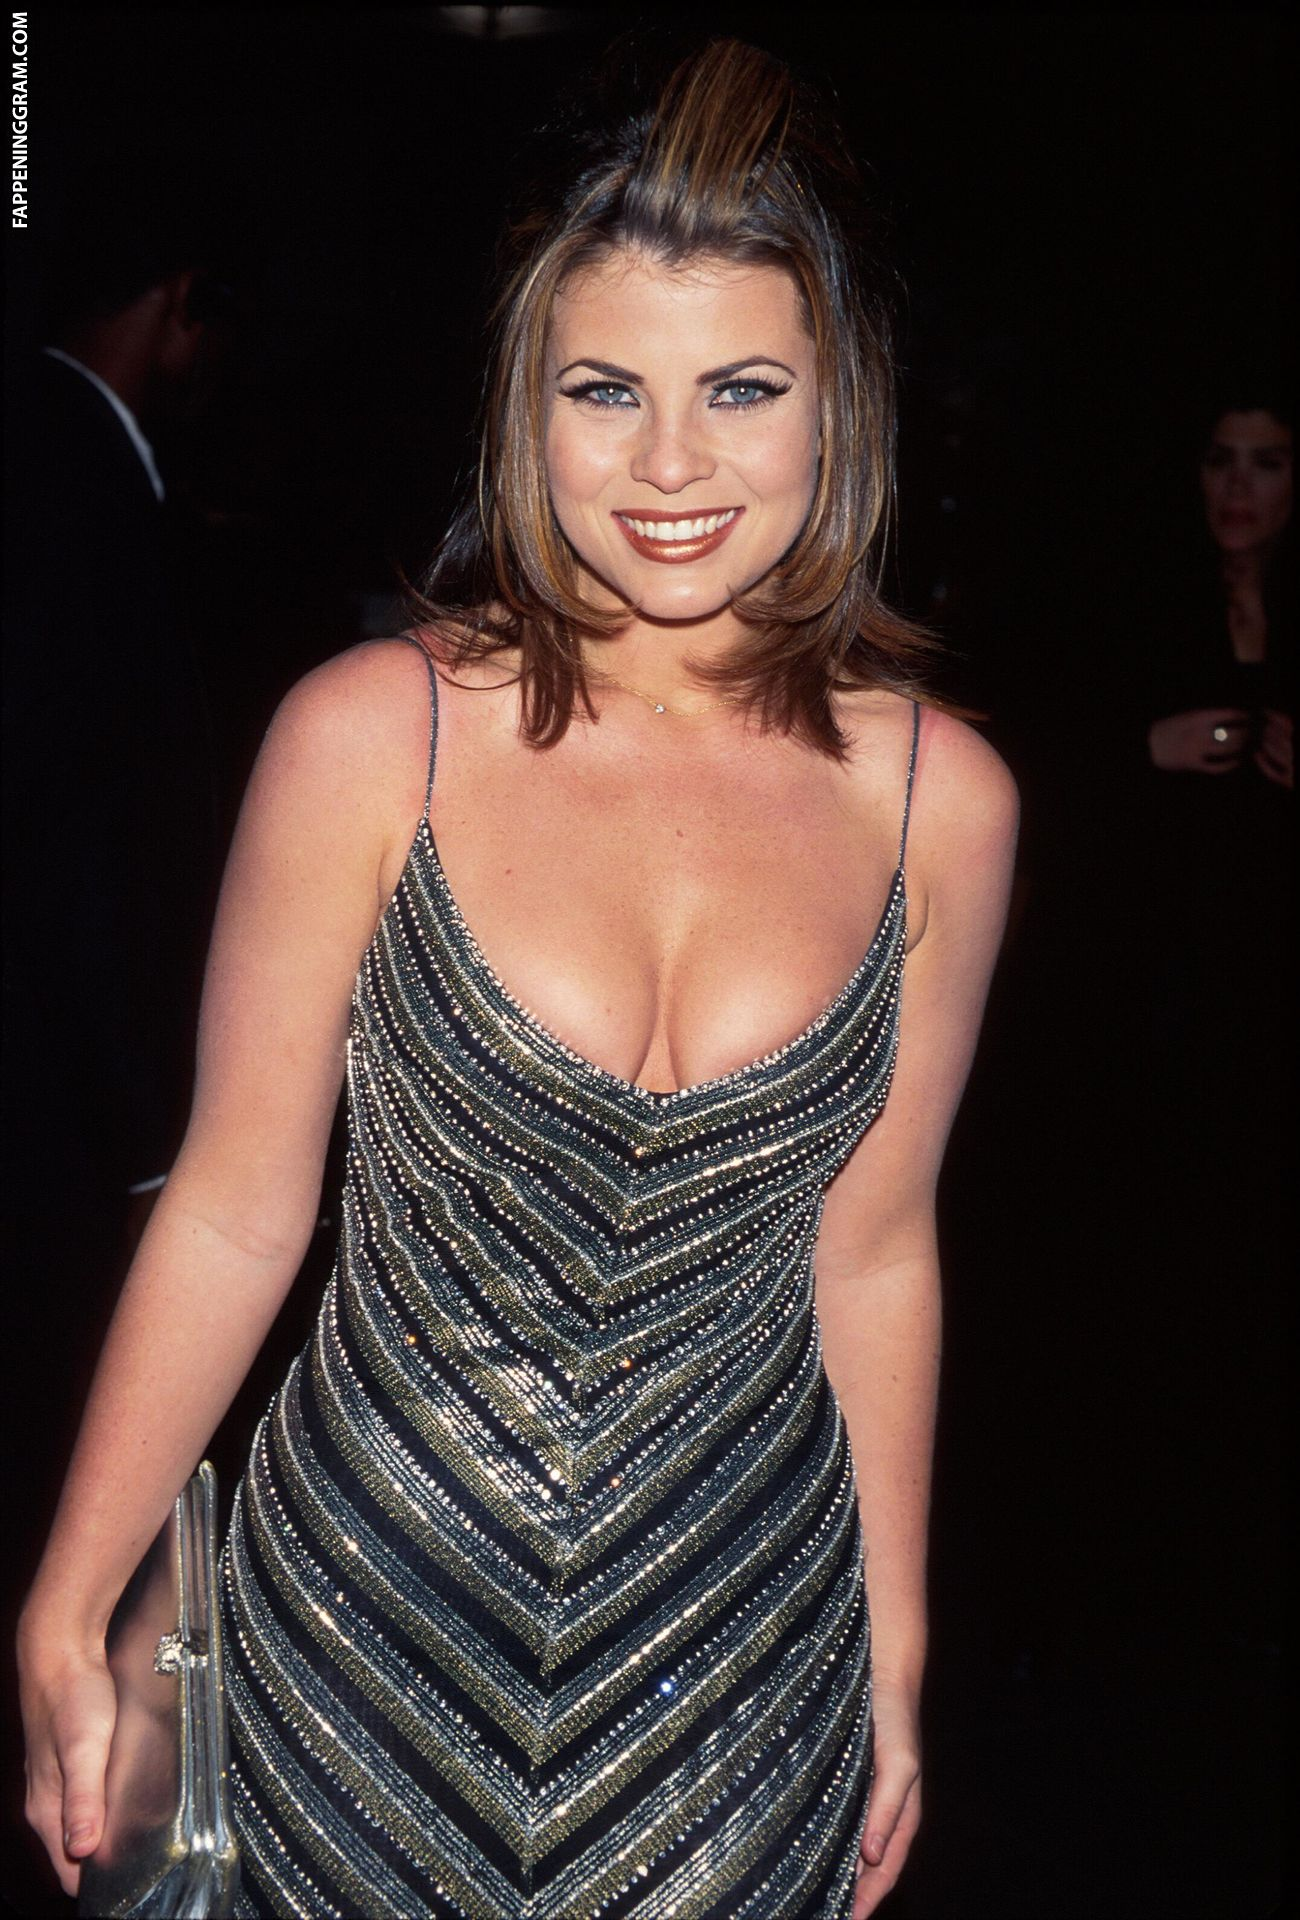 Yasmine Bleeth Nude The Fappening - Page 2 - FappeningGram